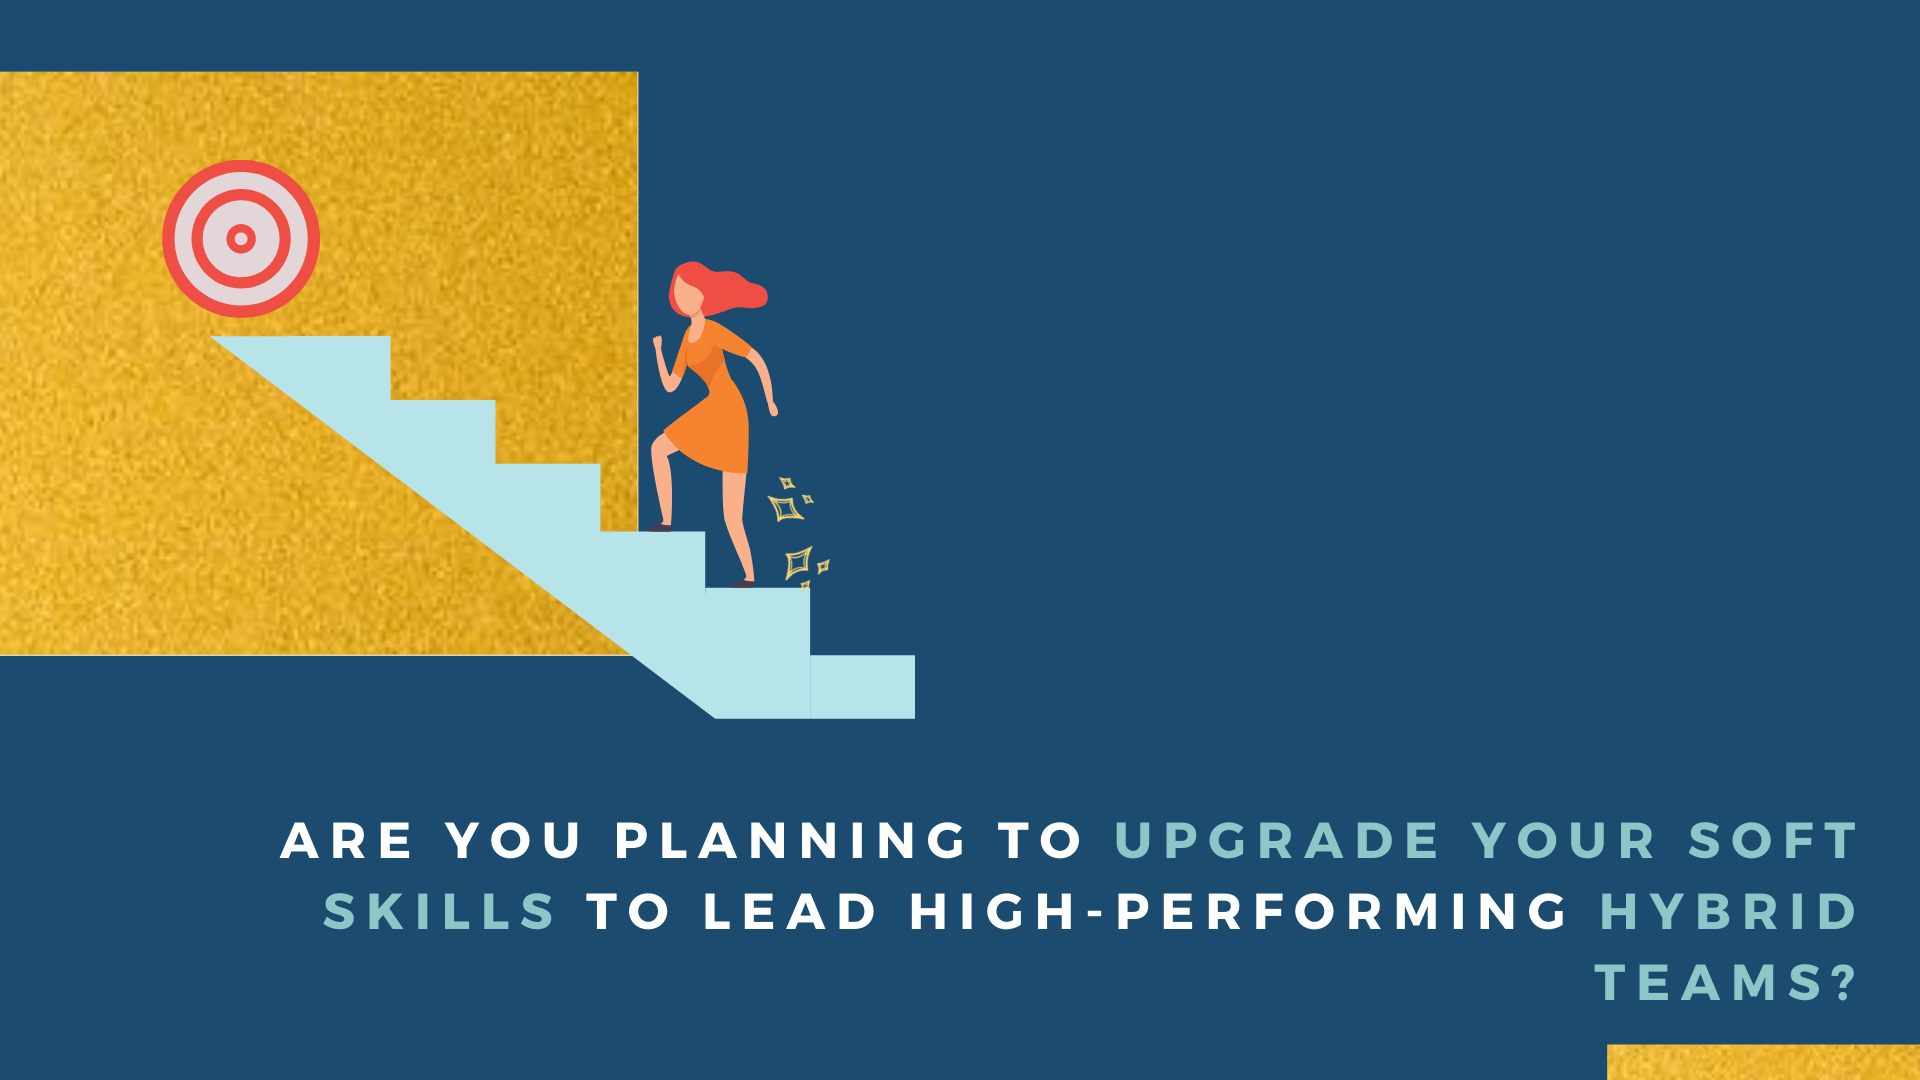 Are you planning to upgrade your soft skills to lead high-performing hybrid teams?